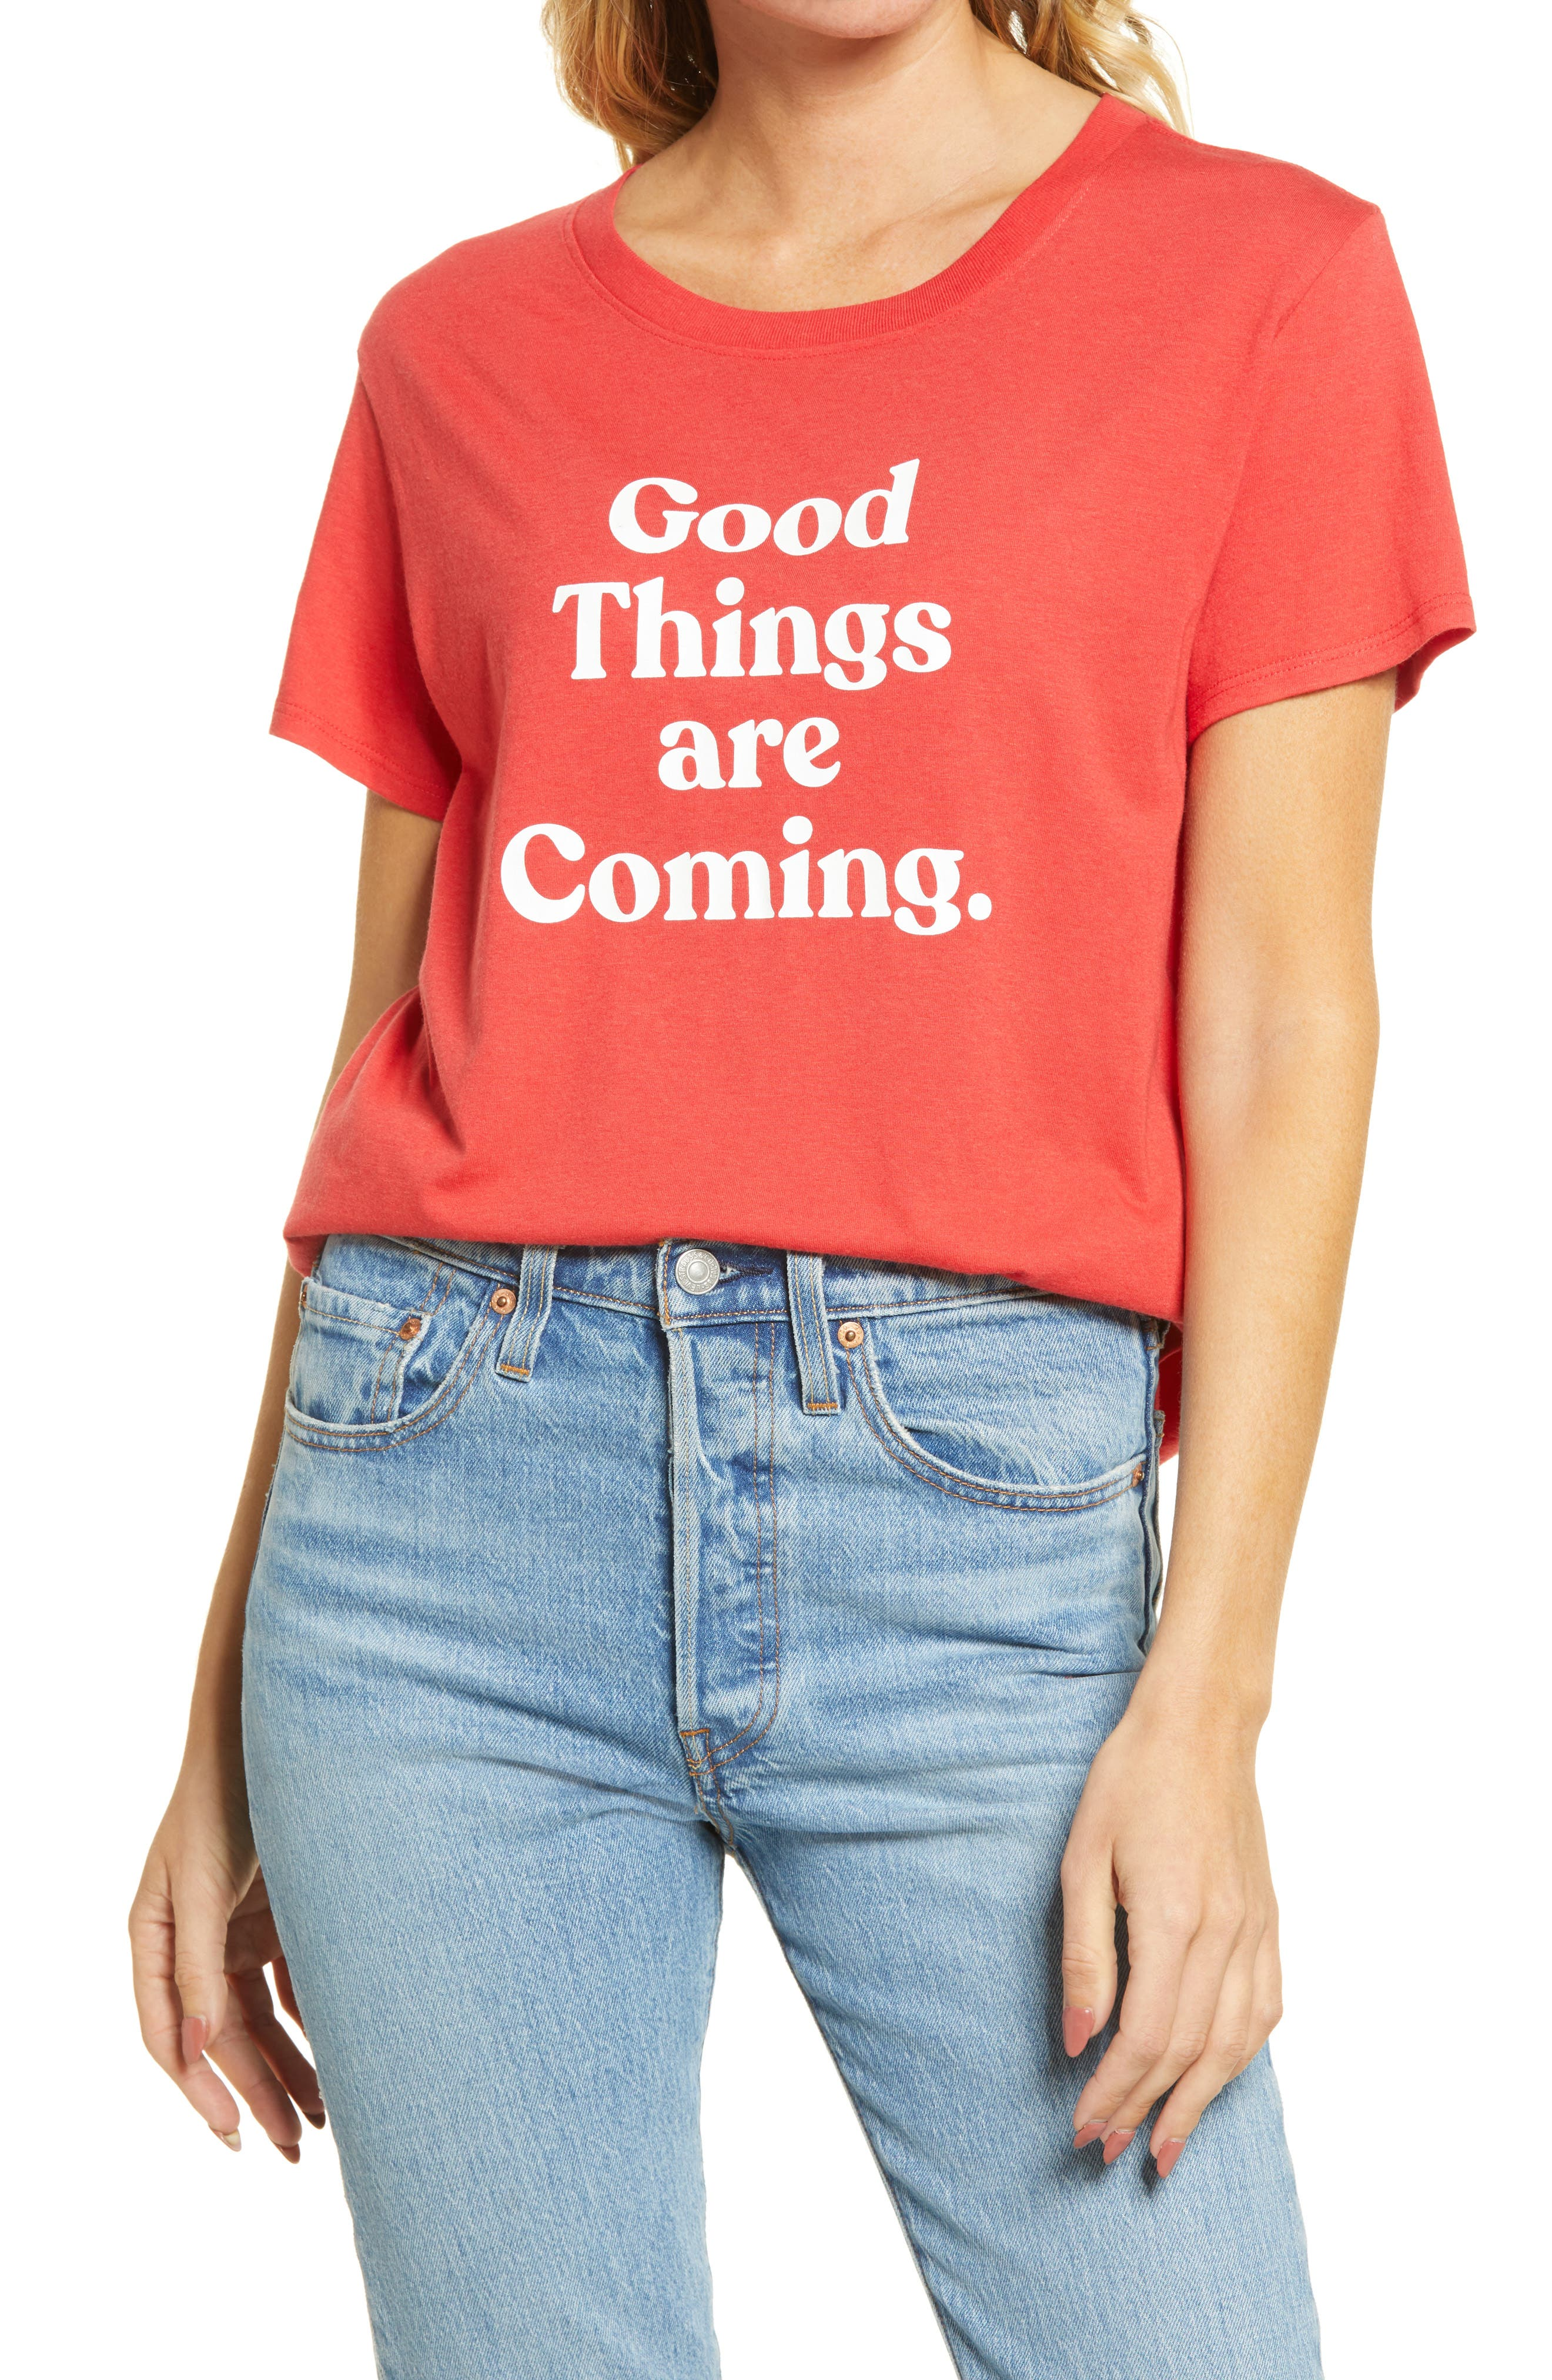 women/'s graphic tee graphic flannel self love shirt inspirational shirt flannel shirt quote shirt red flannel self love graphic tee